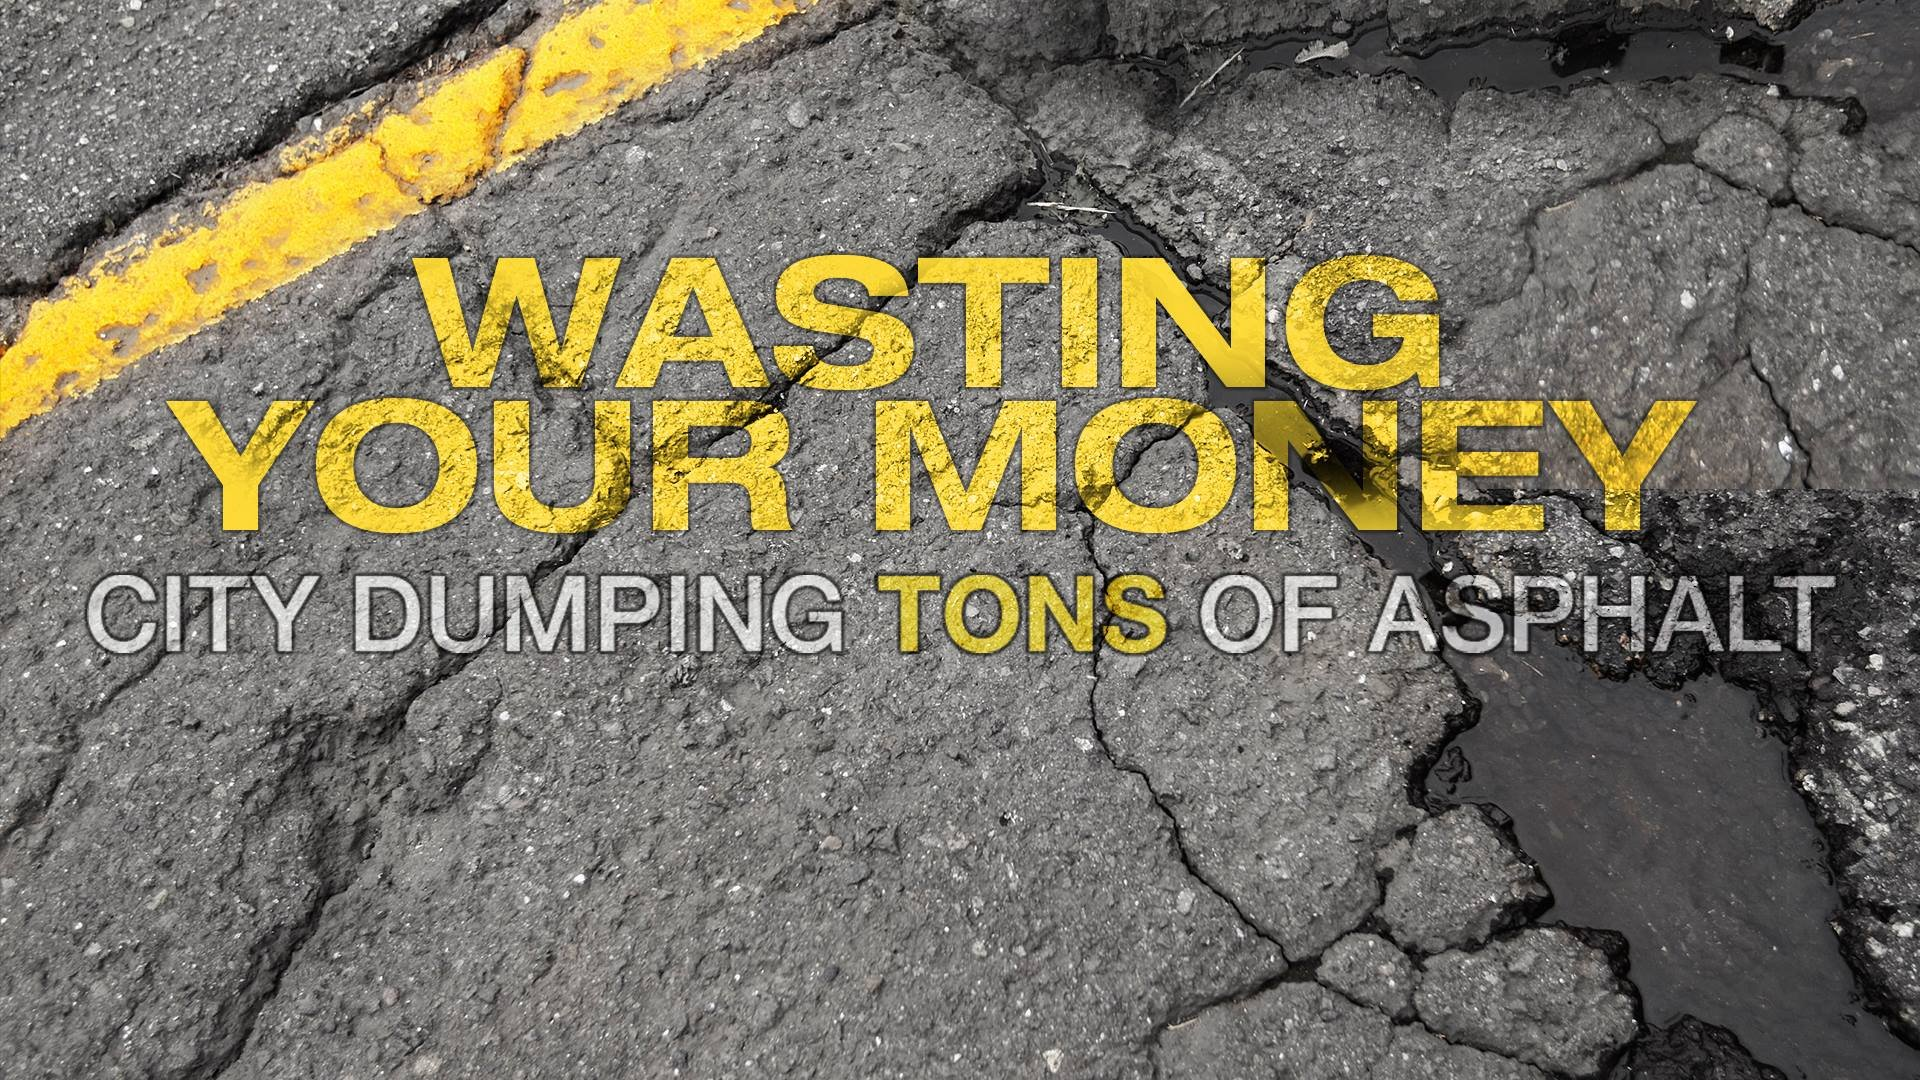 KCTV5 News exposed Wyandotte County Street Division employees over purchasing asphalt meant to fill potholes and dumping it on private property wasting thousands of taxpayer dollars and creating distrust in government. (KCTV5)